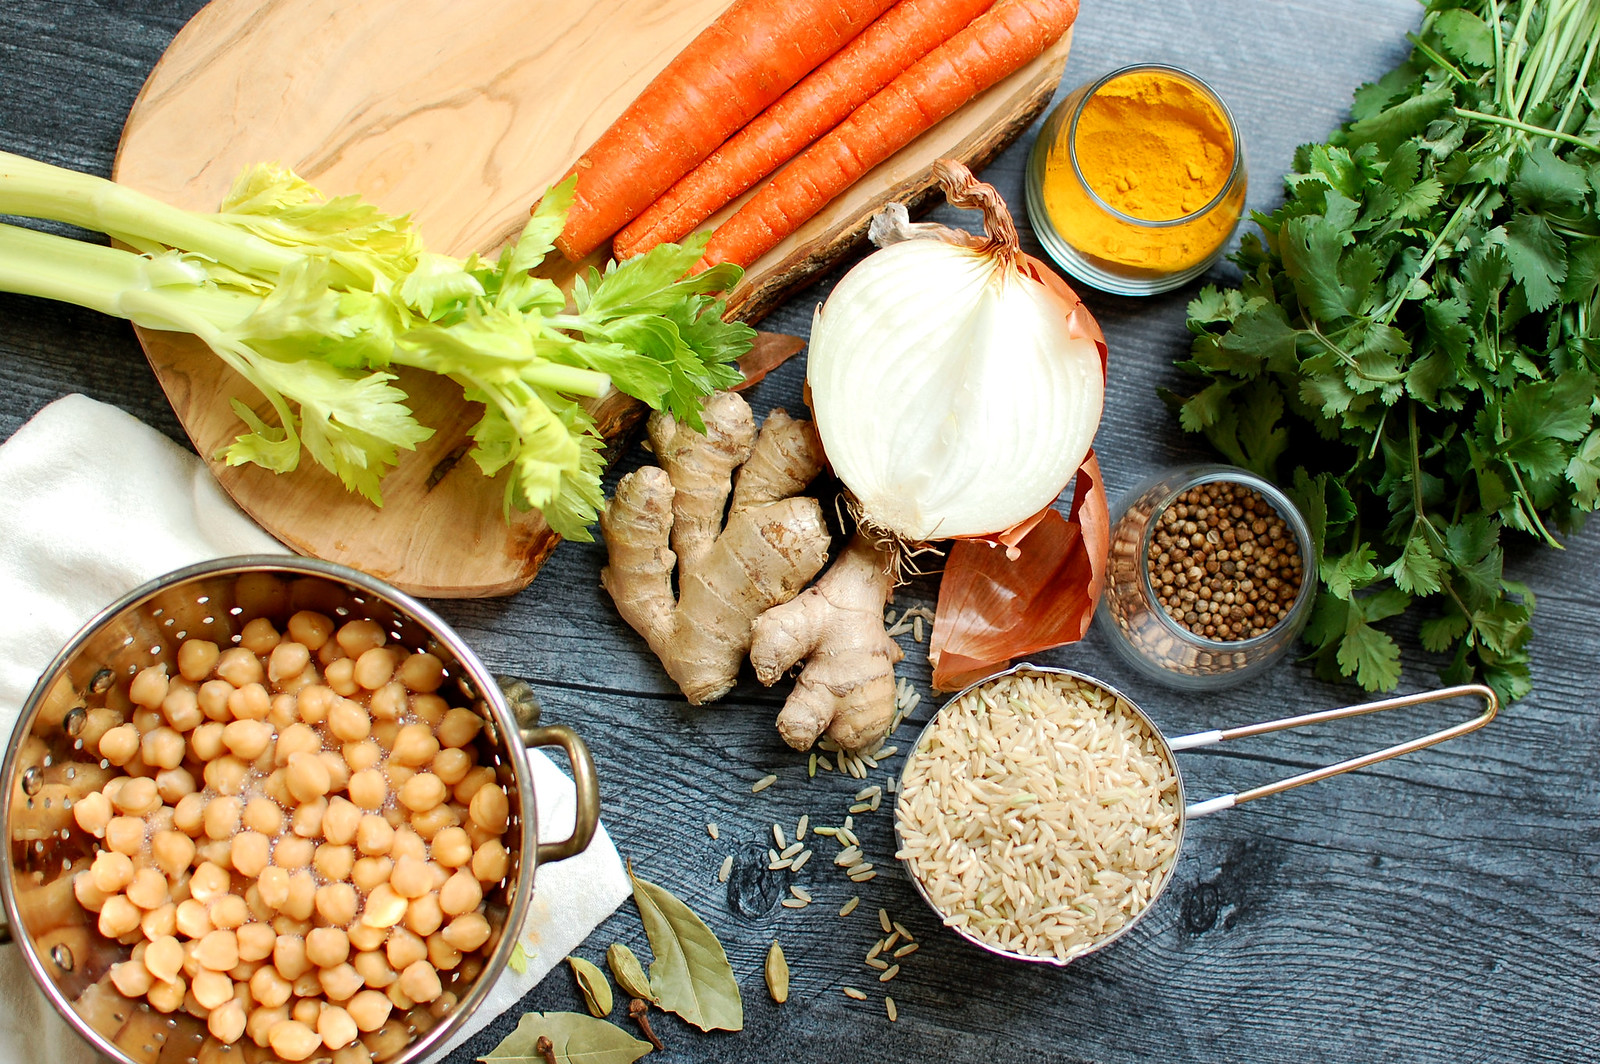 kitchari ingredients onion carrots ginger rice chickpeas spices